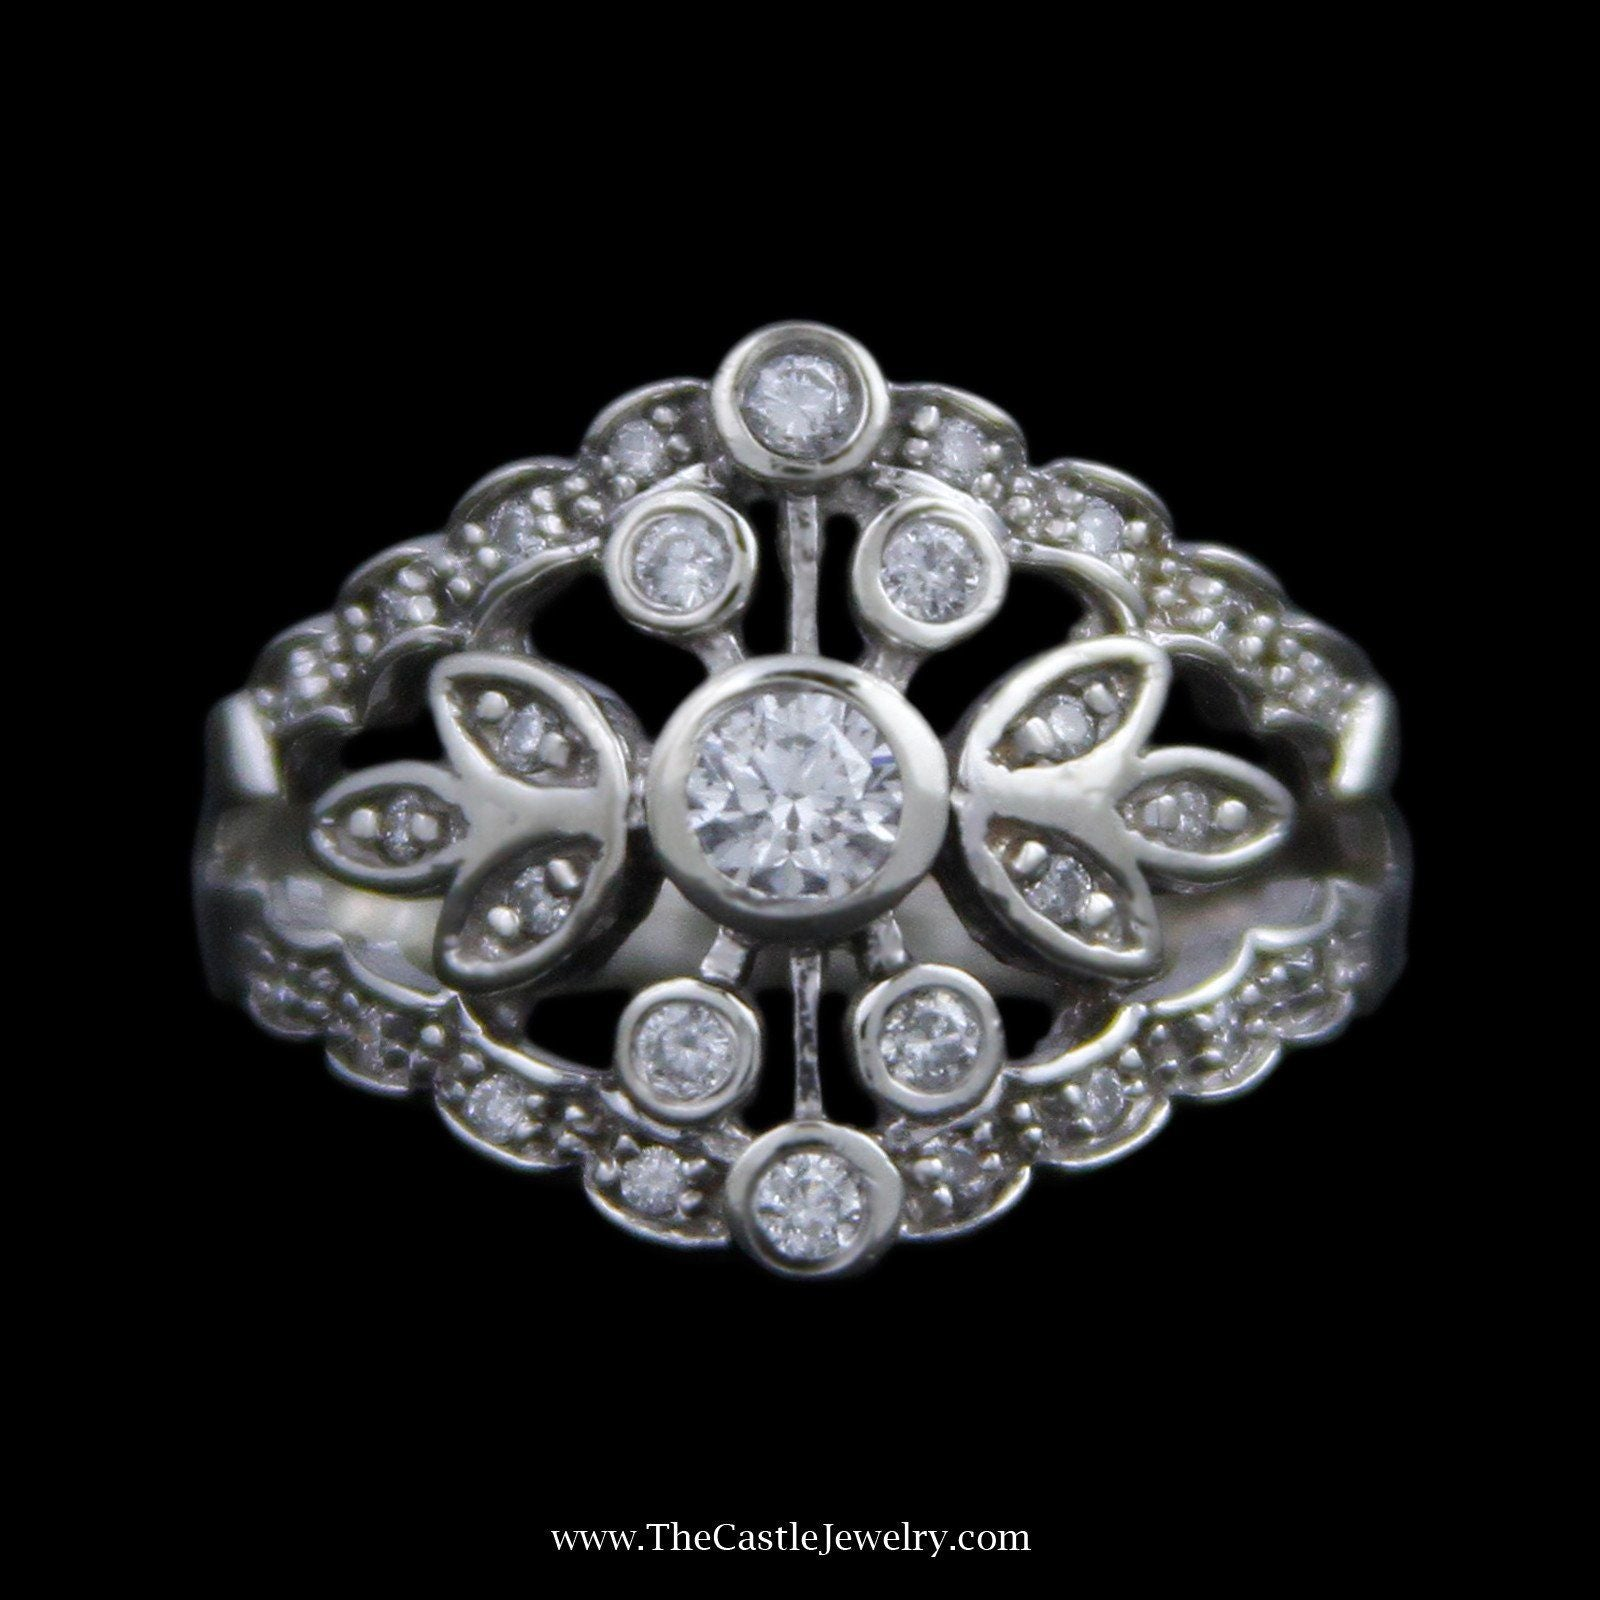 Open Leaf Design Cluster with Bezel & Prong Set Round Brilliant Cut Diamonds in 14K White Gold